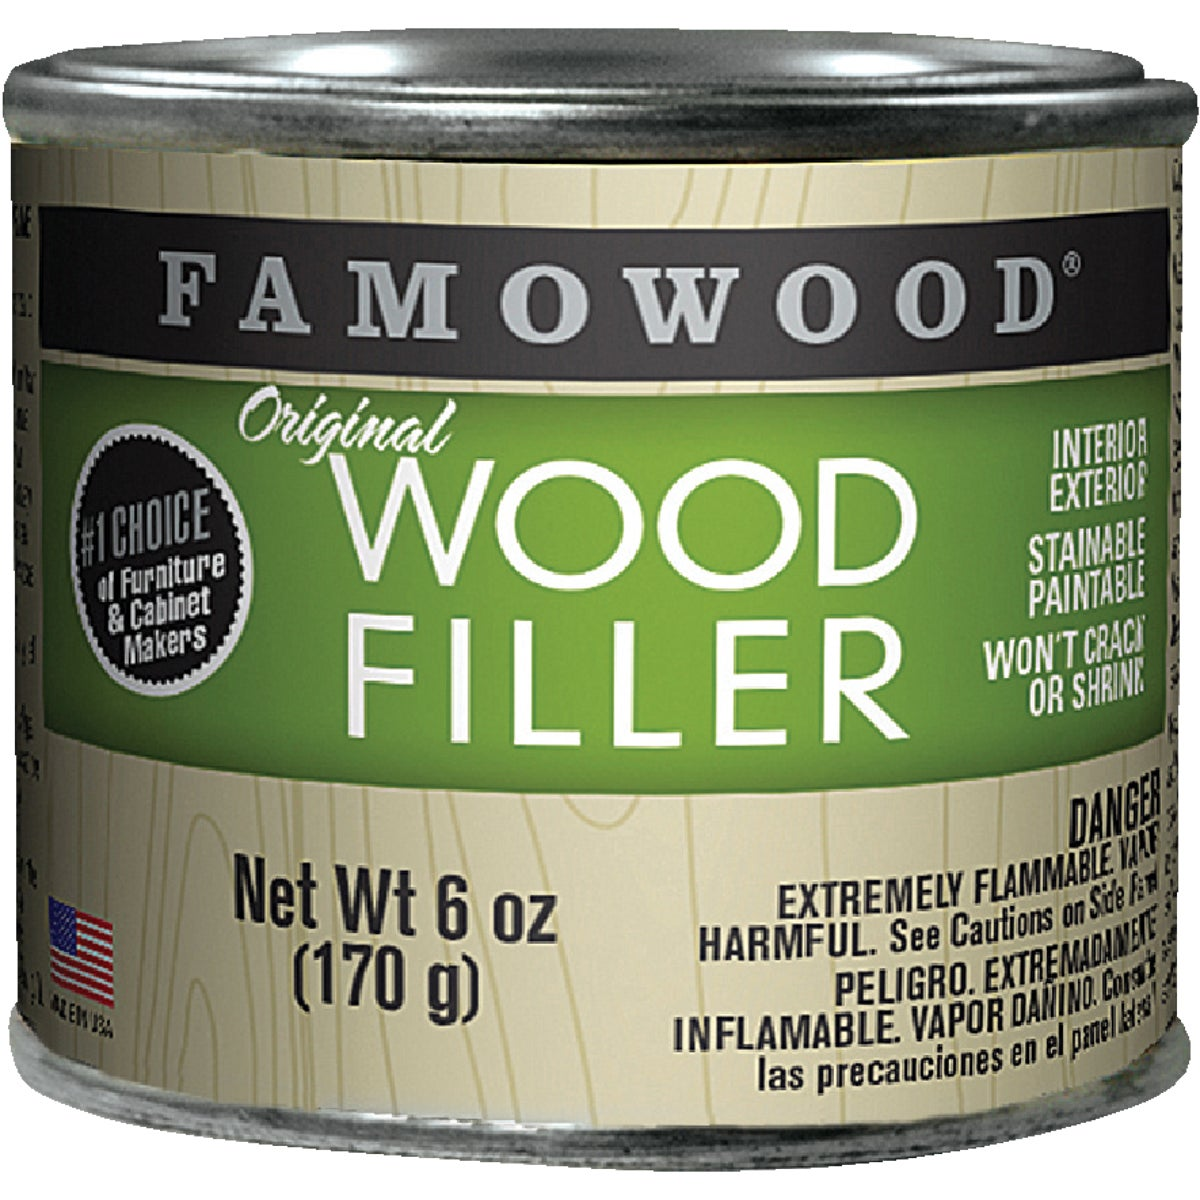 1/4PT WALNUT WOOD FILLER